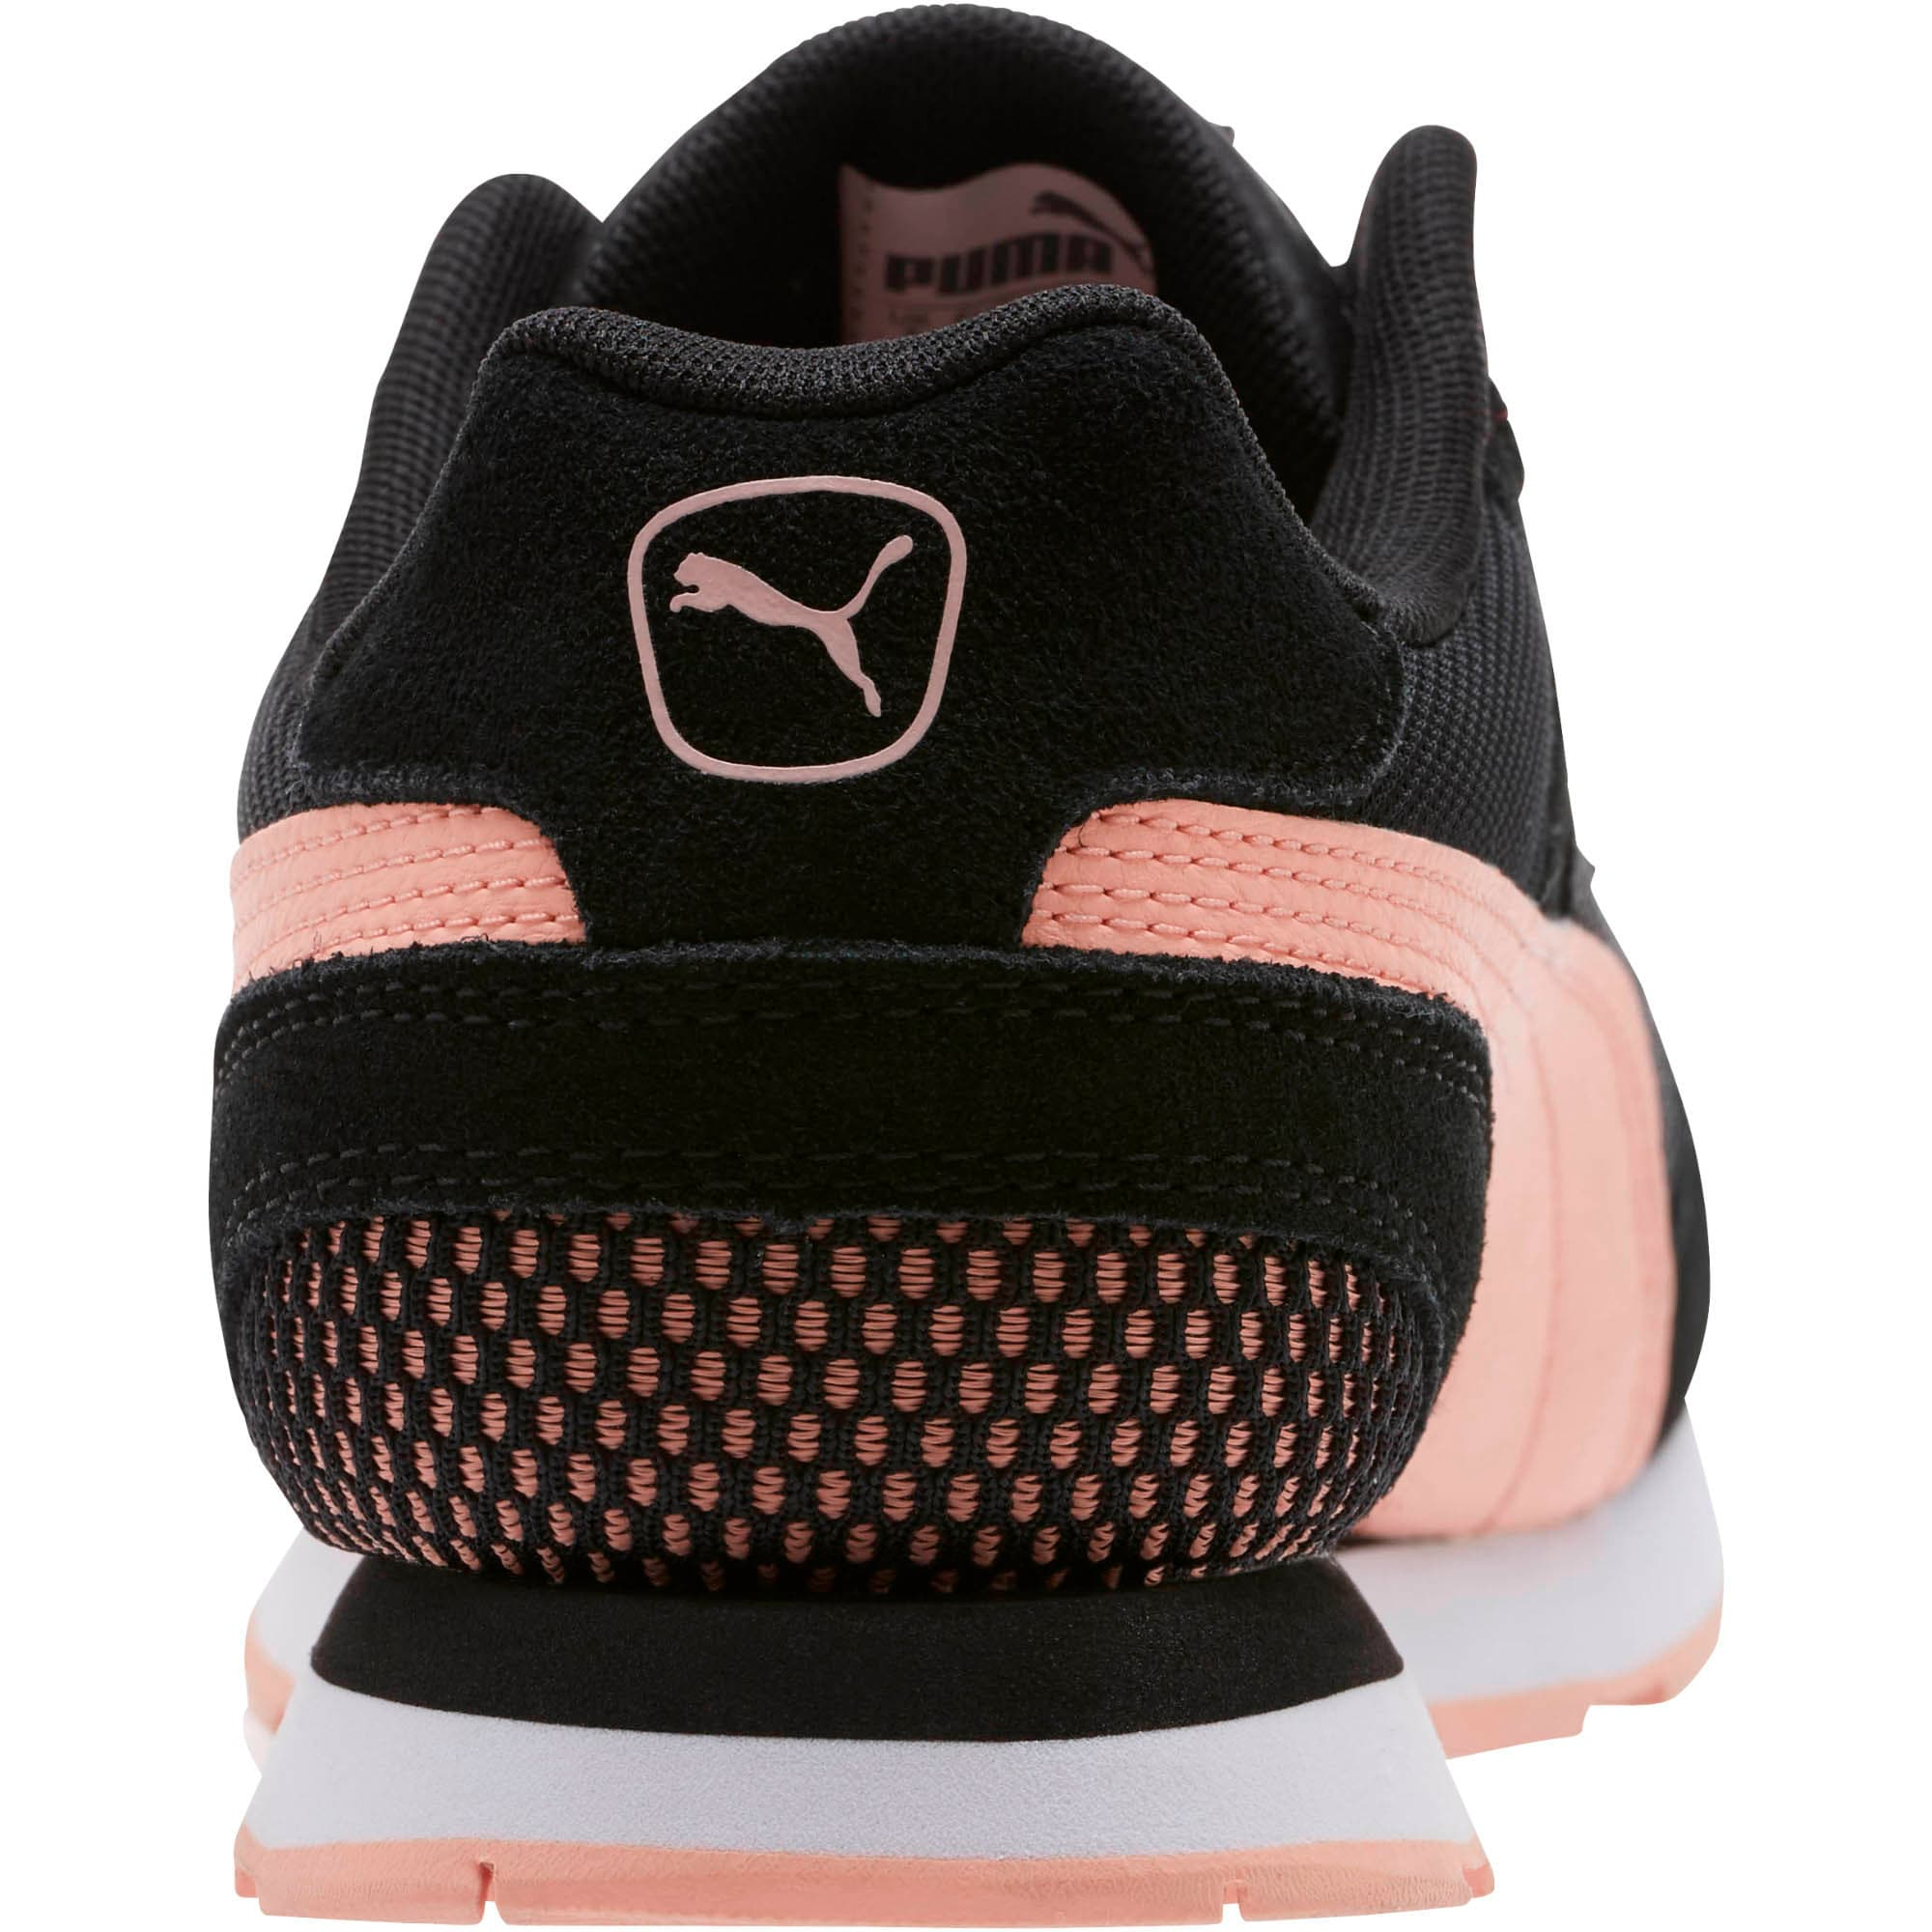 Thumbnail 3 of Vista Women's Sneakers, Puma Black-Peach Bud, medium